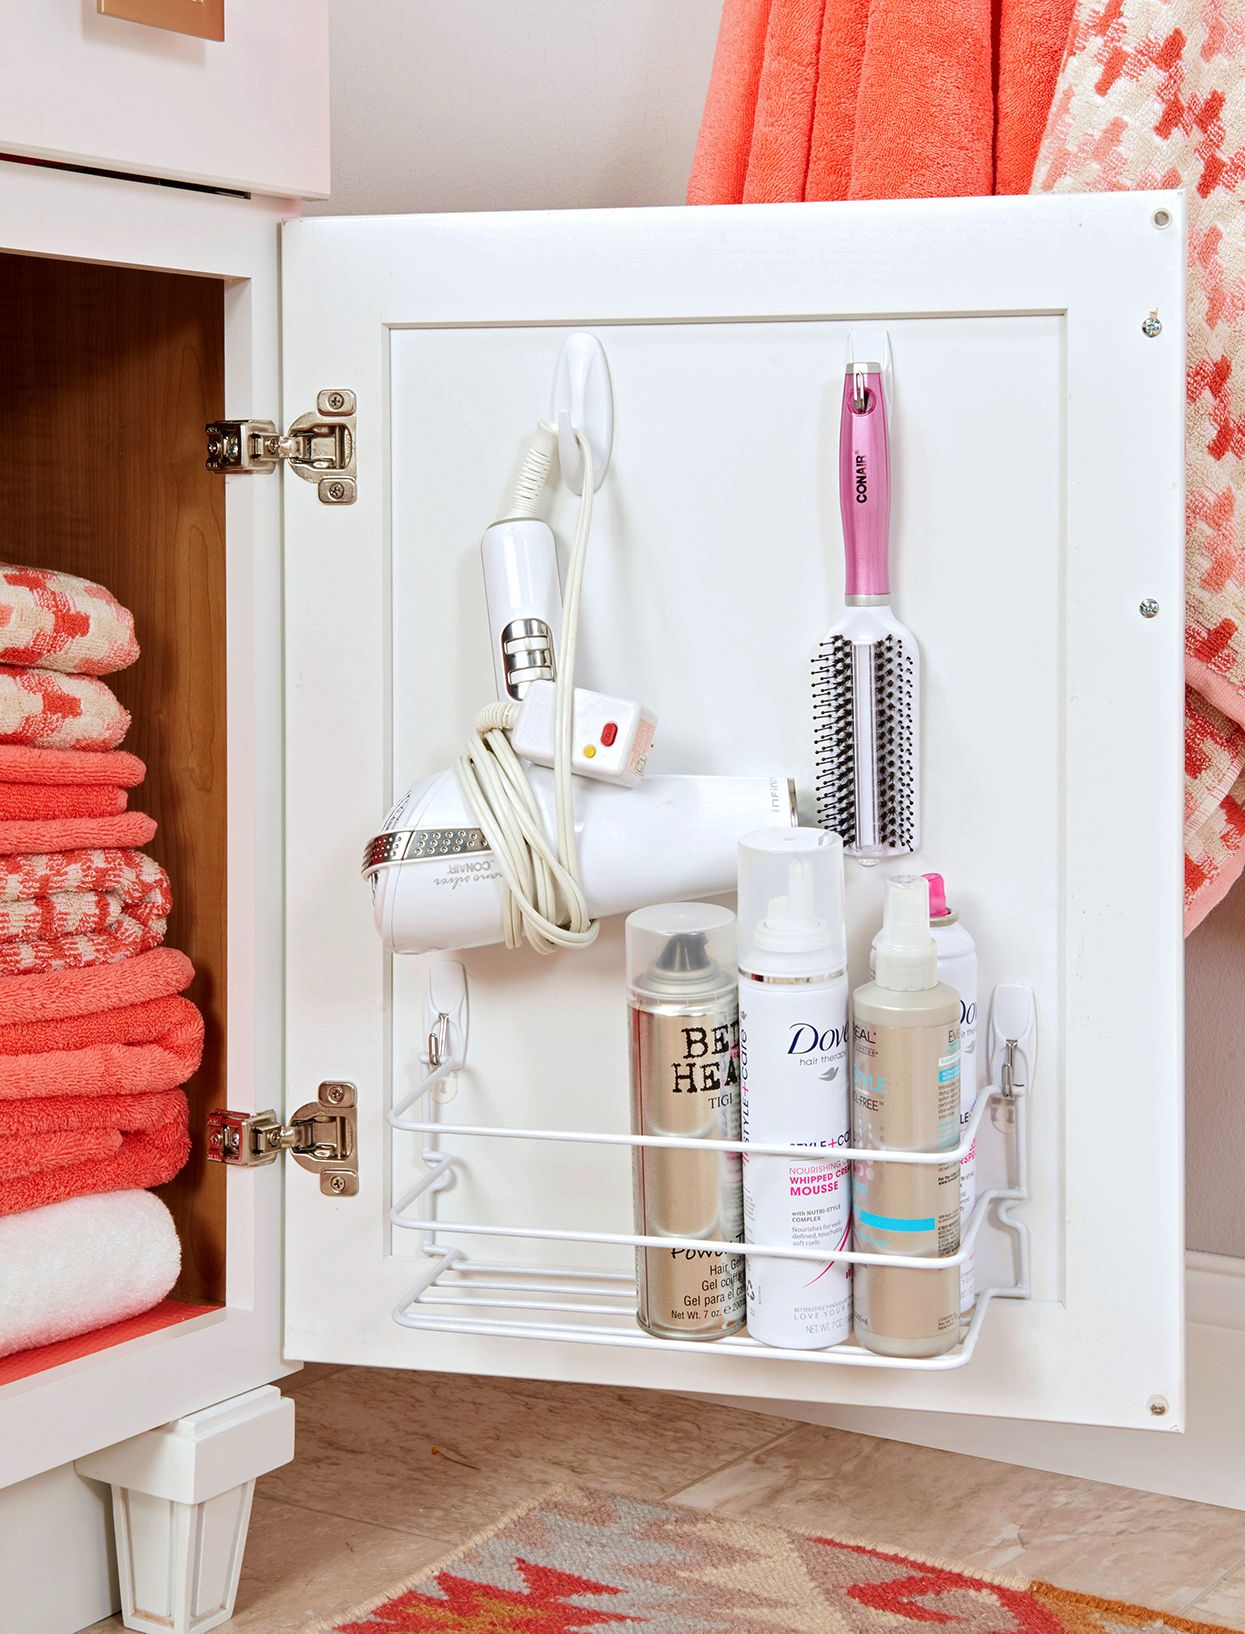 14 Small Space Hacks To Make The Most Of Your Tiny Bathroom Small Bathroom Storage Bathroom Organization Diy Diy Bathroom Storage Bathroom under sink organizer